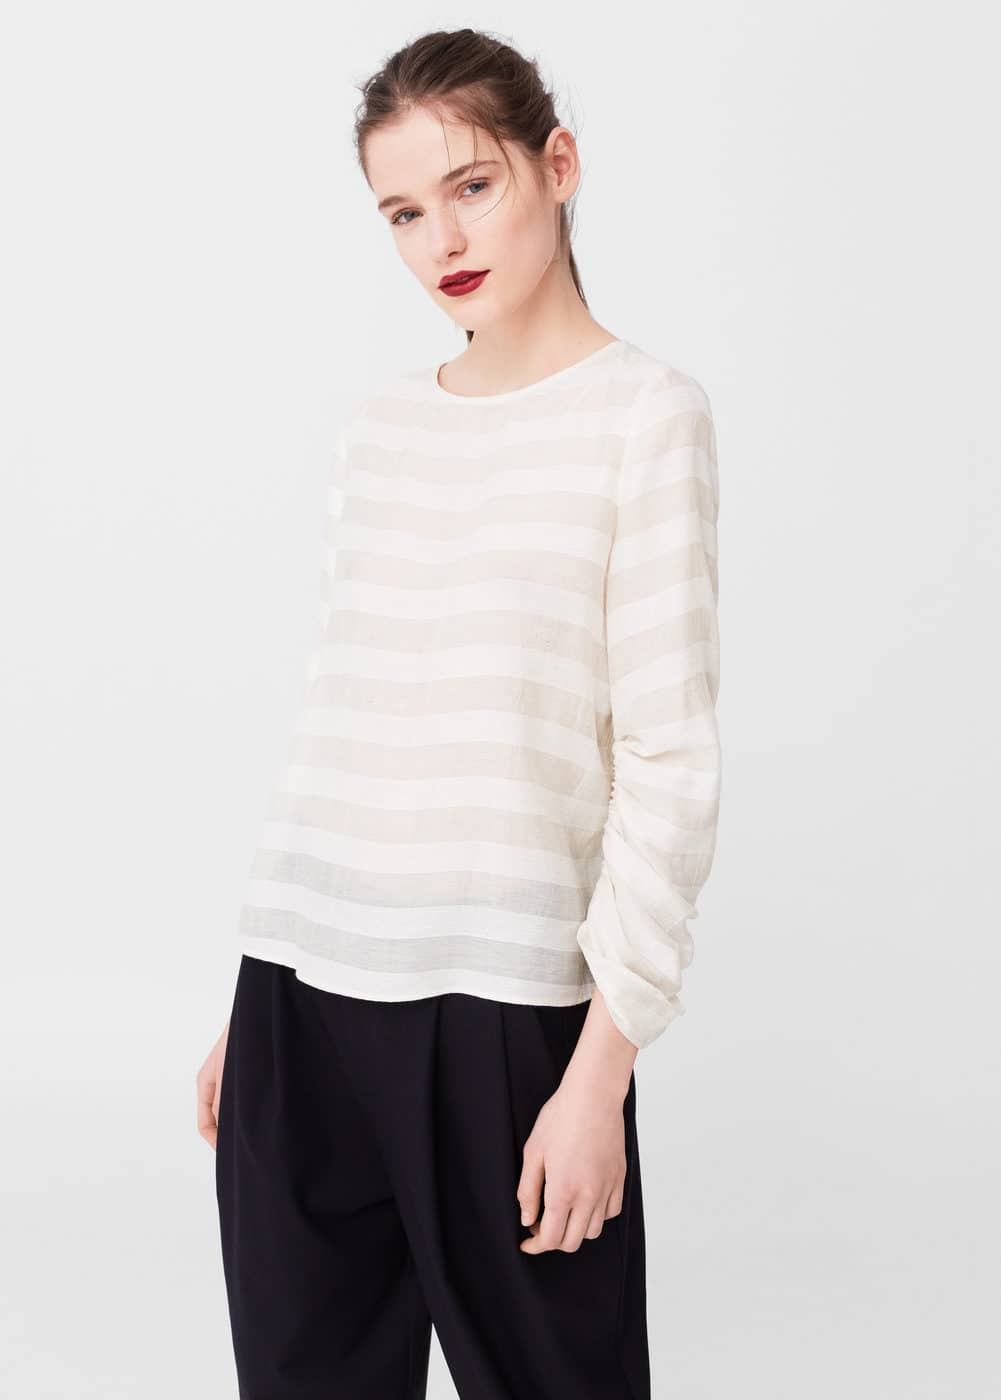 Semitransparent linen-blend blouse | MANGO